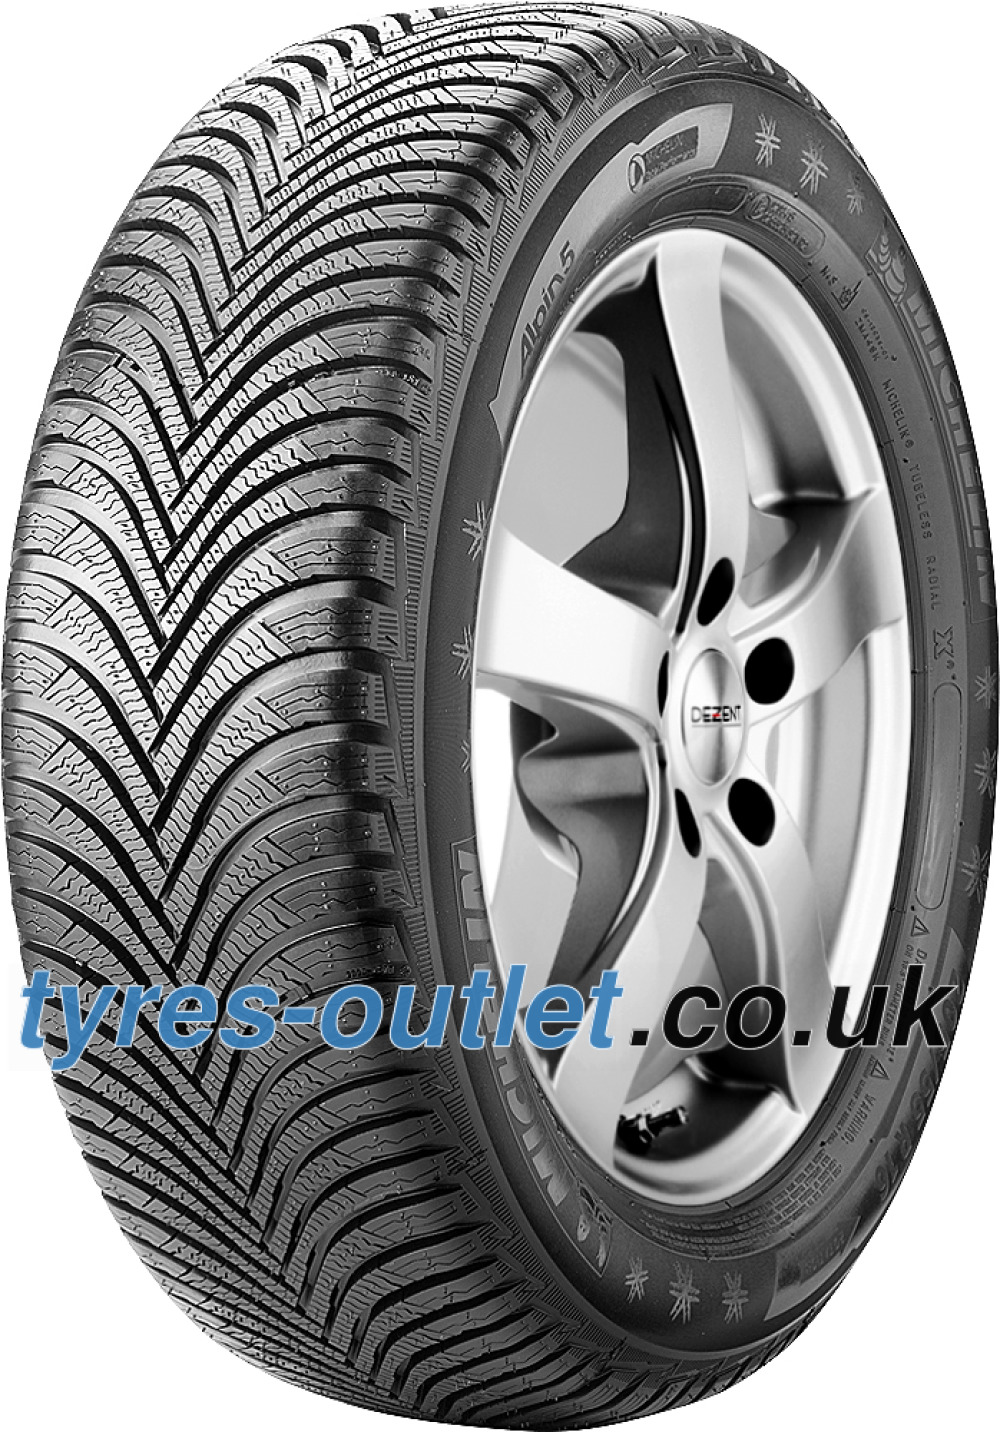 Michelin Alpin 5 ( 205/50 R17 93H XL , with rim protection ridge (FSL) )